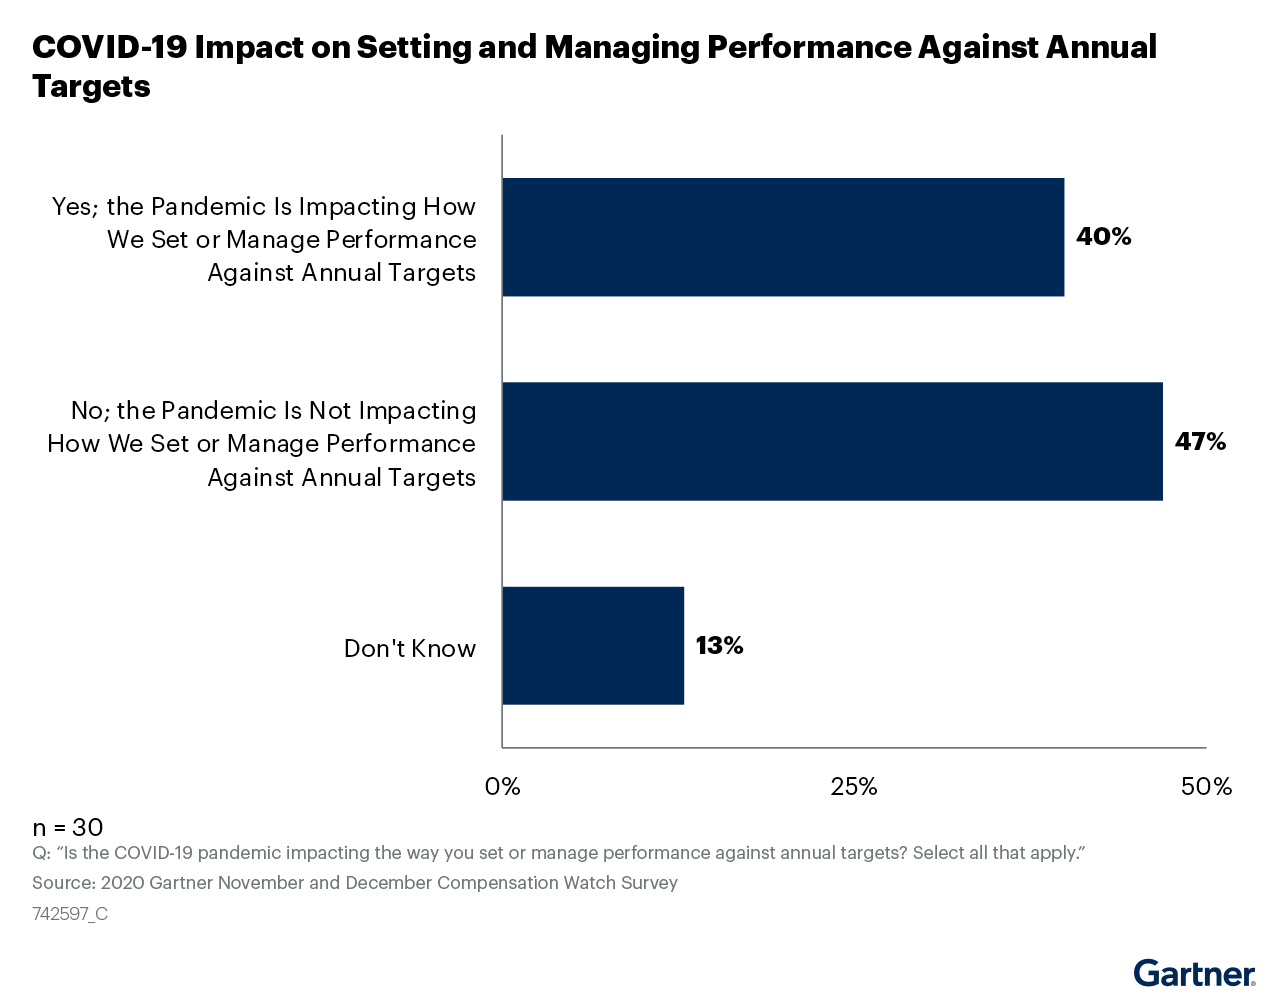 Figure 16: COVID-19 Impact on Setting and Managing Performance Against Annual Targets